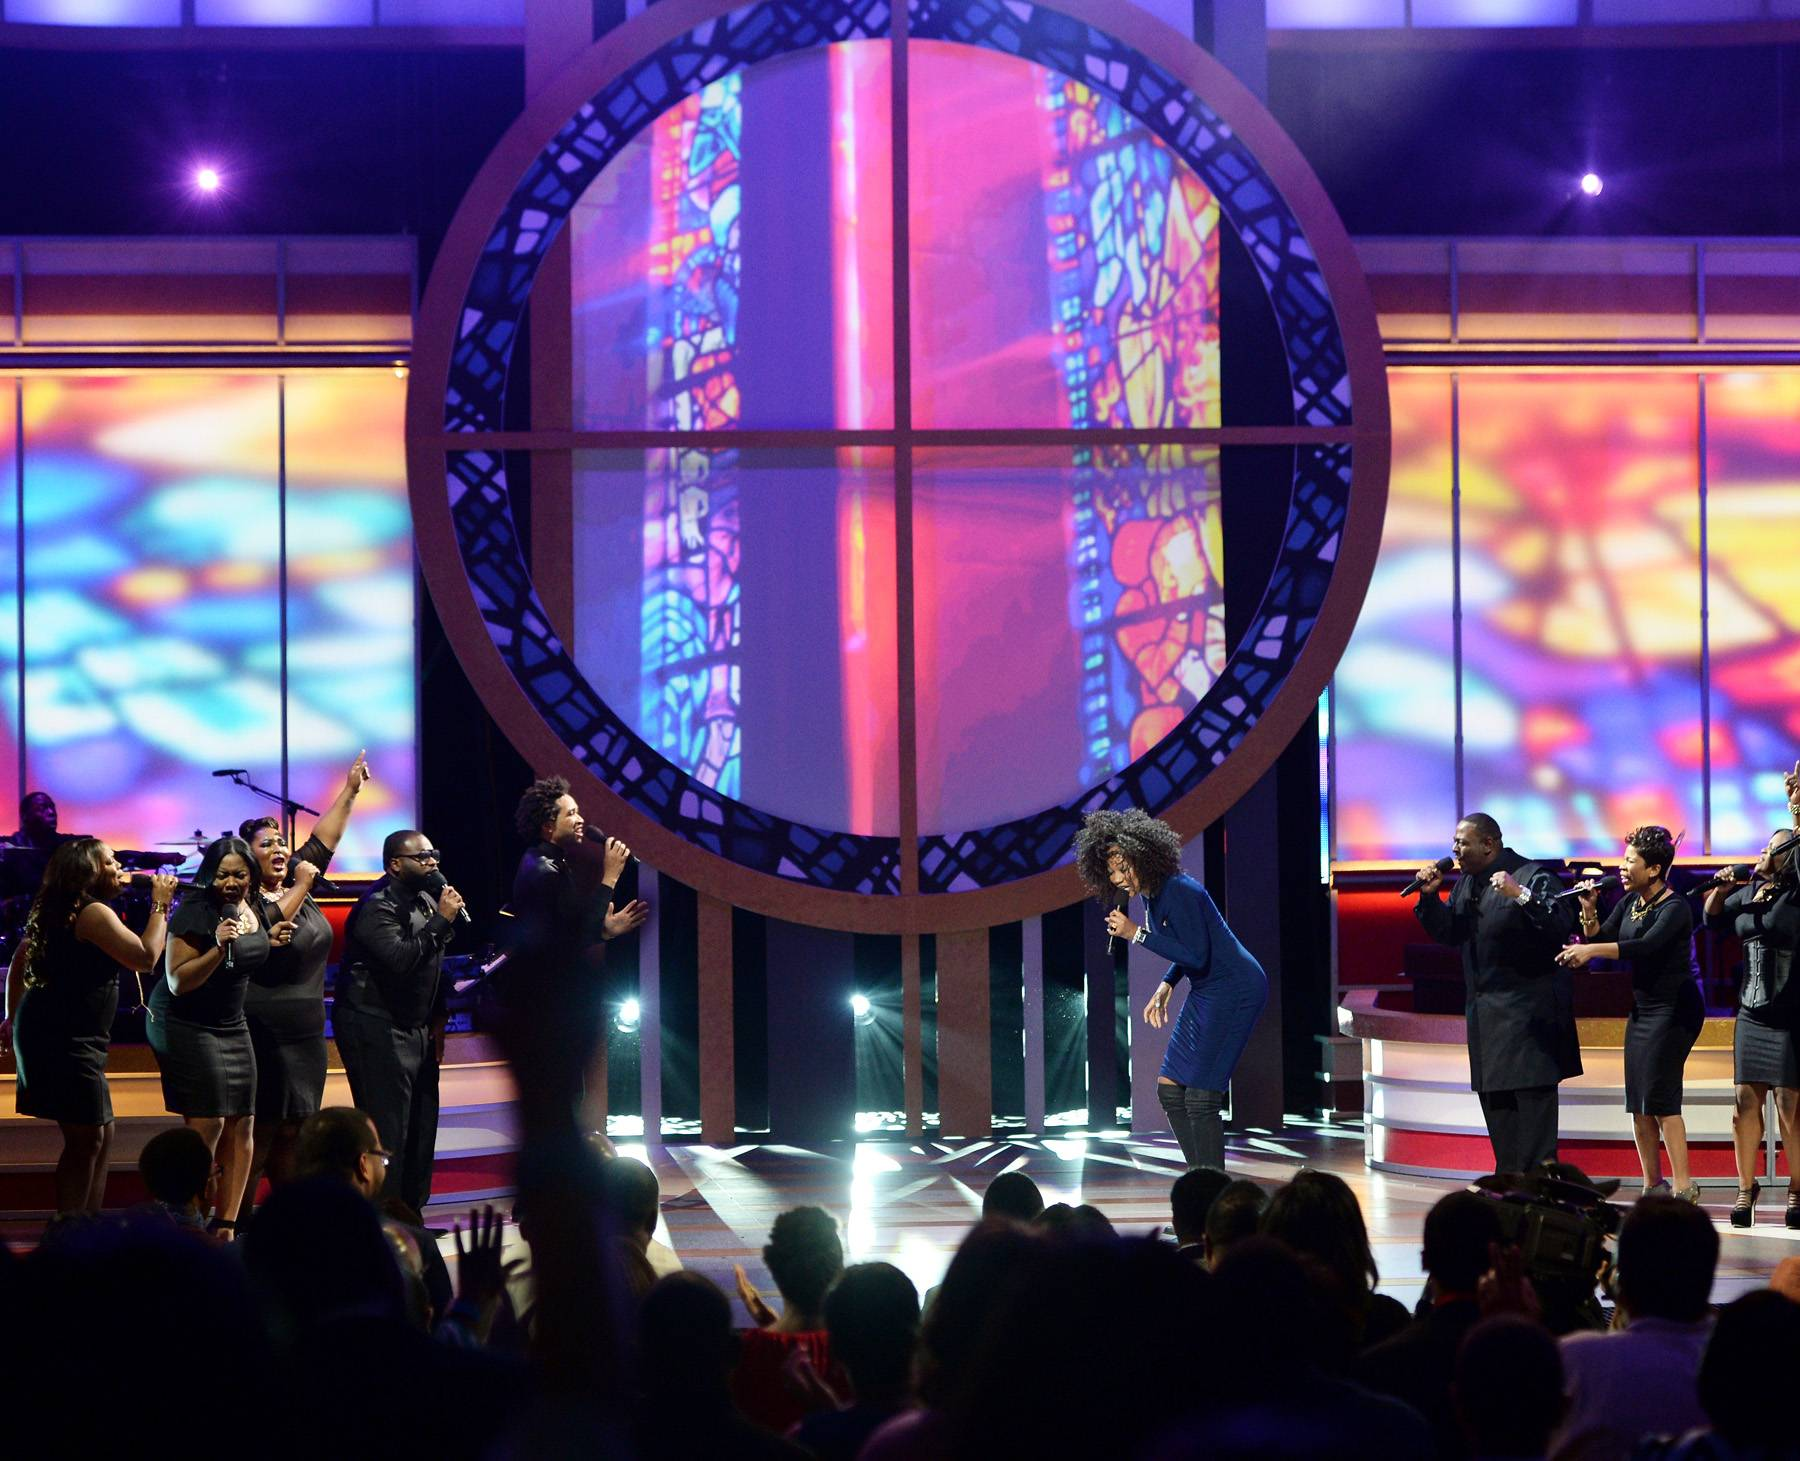 A Sight to See - A beautiful performance coupled with a beautiful set makes for a sight to see. This was the case for Yolanda Adams' show down at Celebration of Gospel.(Photo: Jason Kempin/Getty Images for BET)